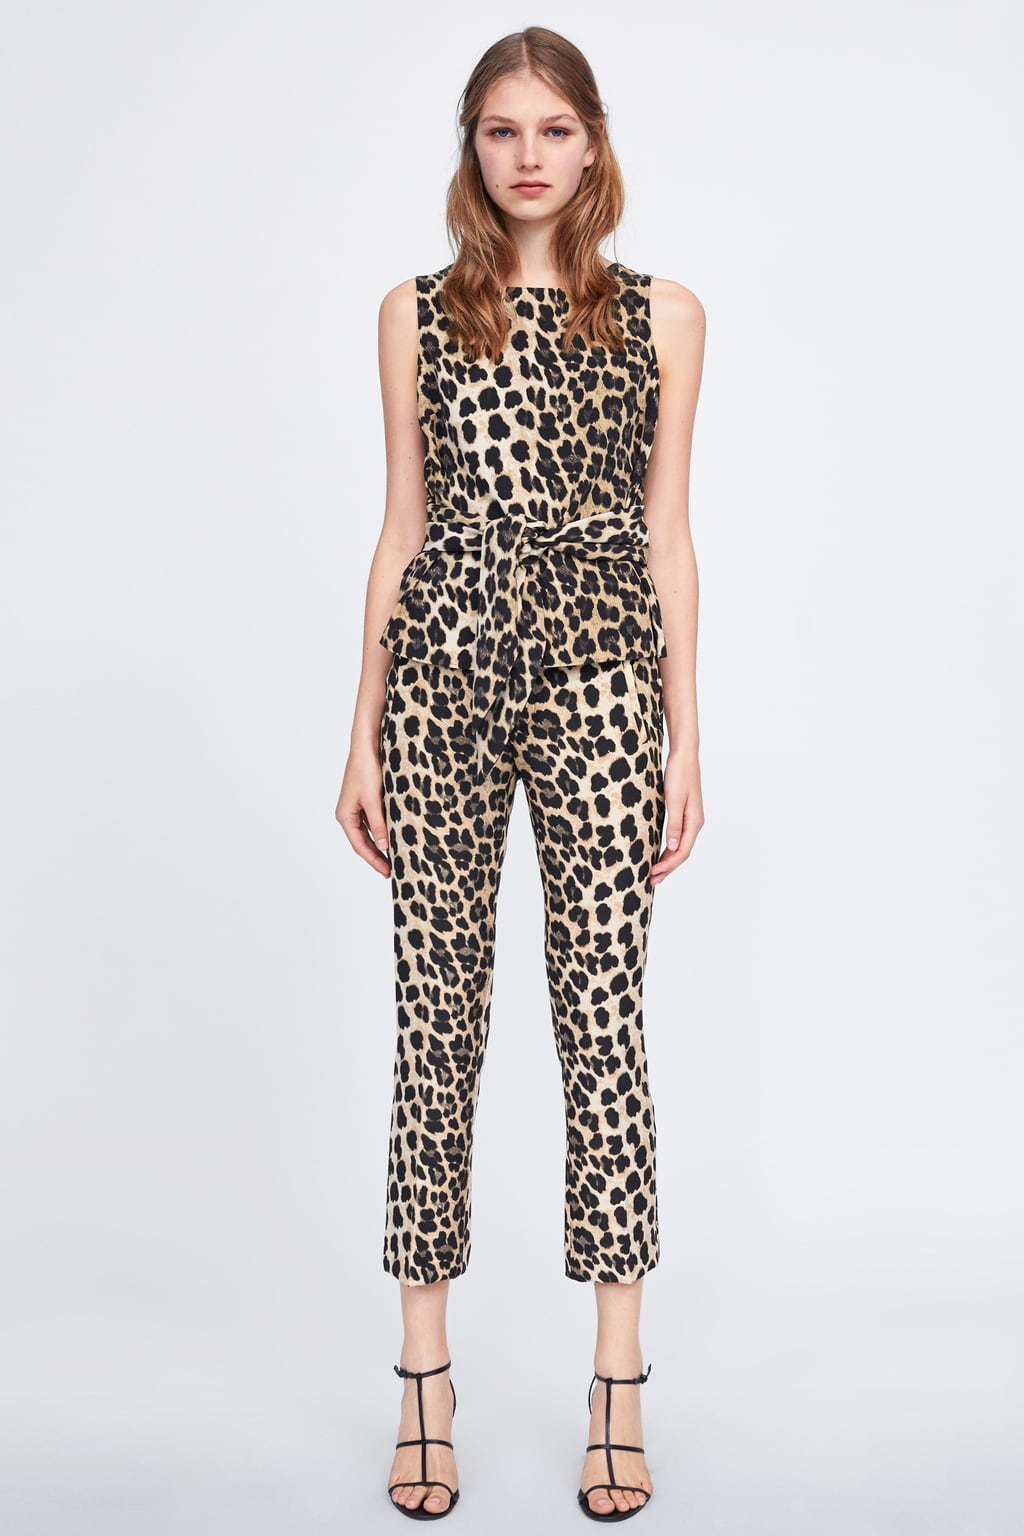 What I Learned When I Tried To Buy An Animal Print Blouse